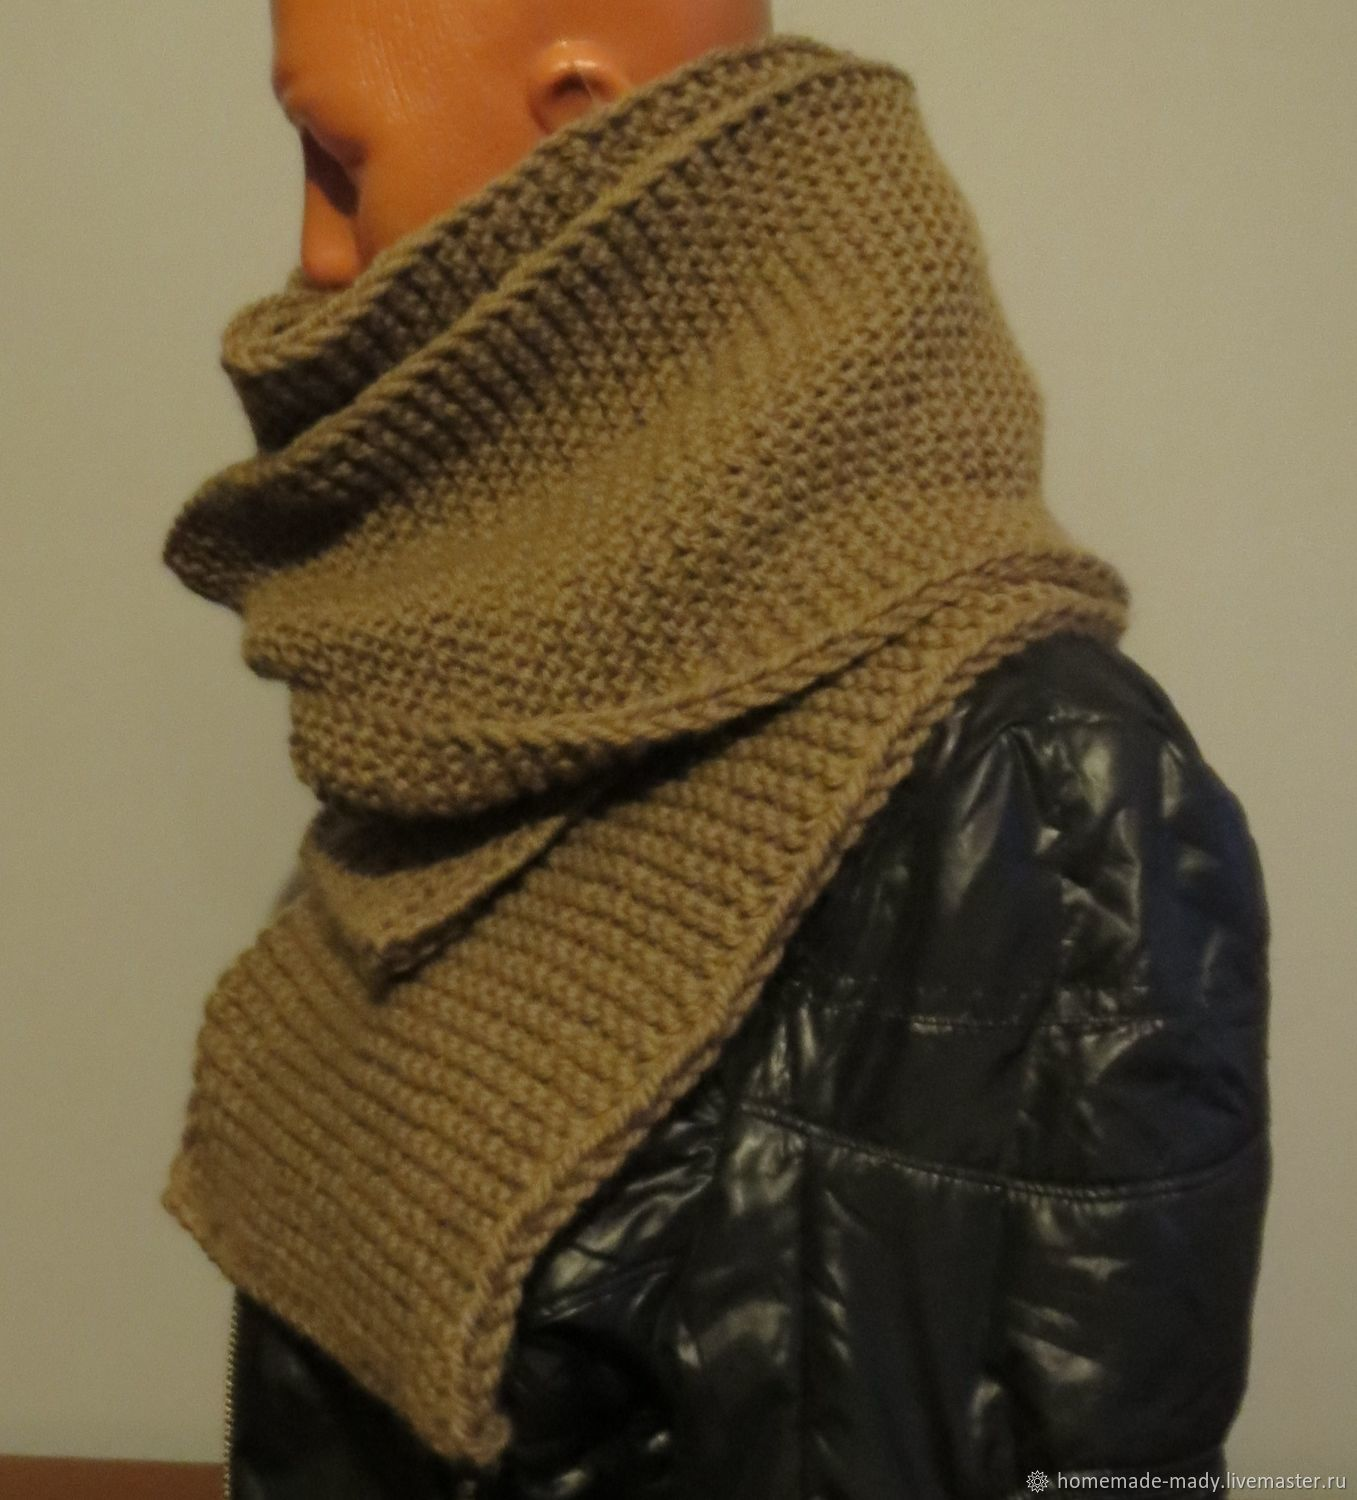 Men's TOBACCO scarf 100% - wool, Scarves, Moscow,  Фото №1